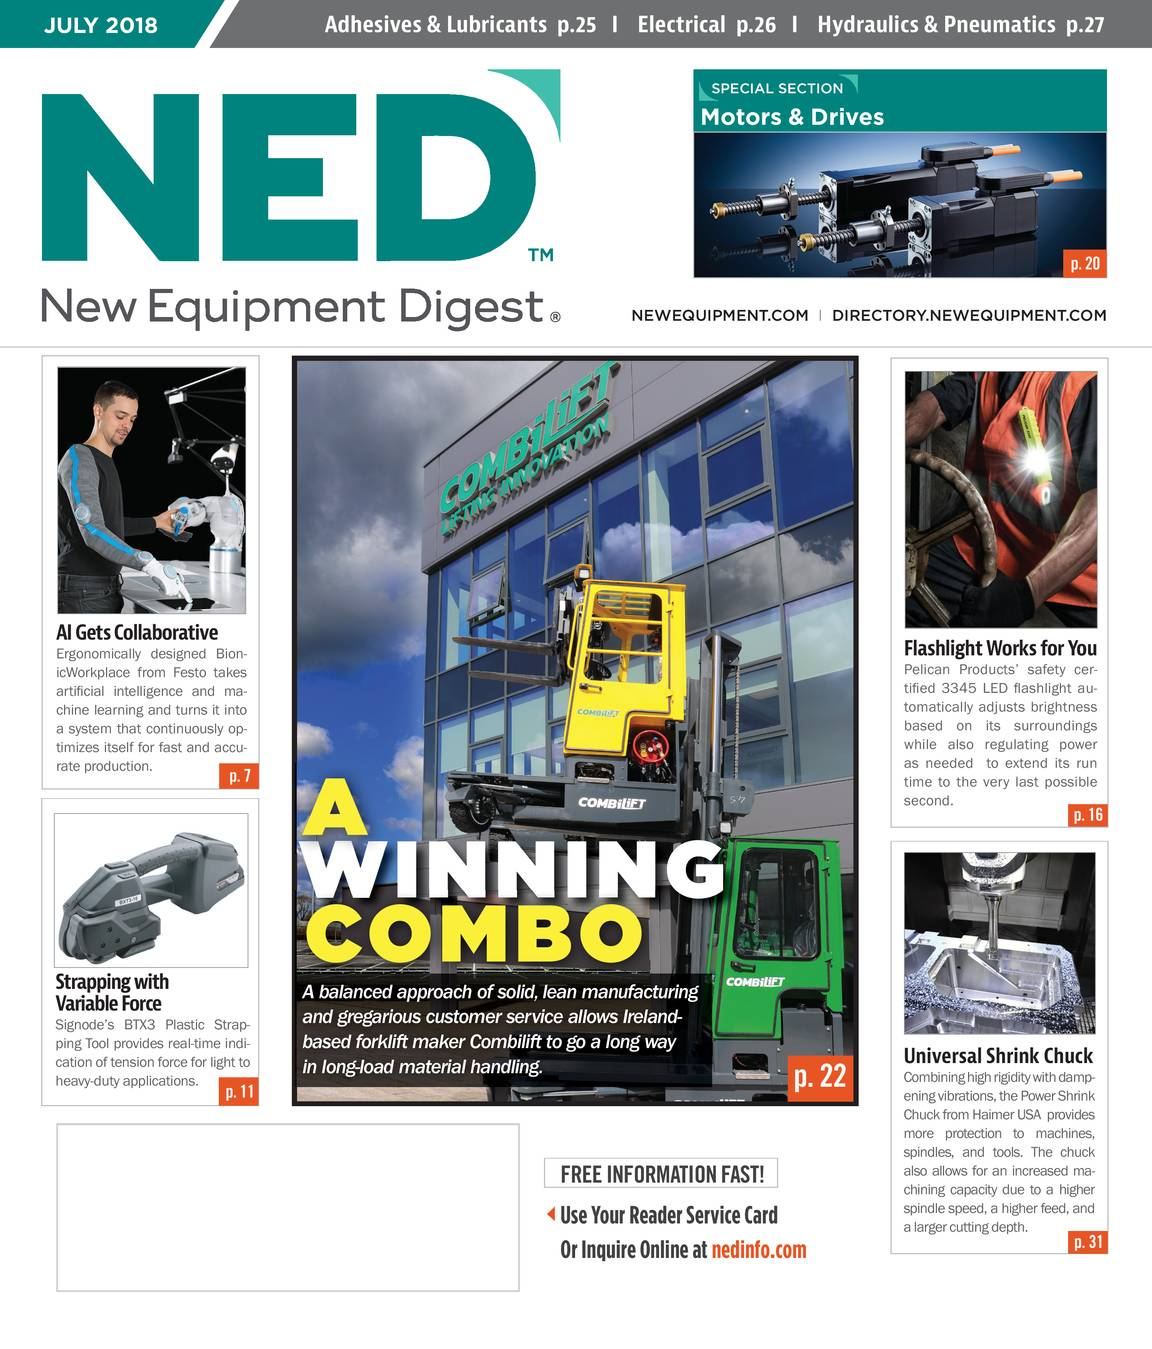 New Equipment Digest - July 2018 - page IFC